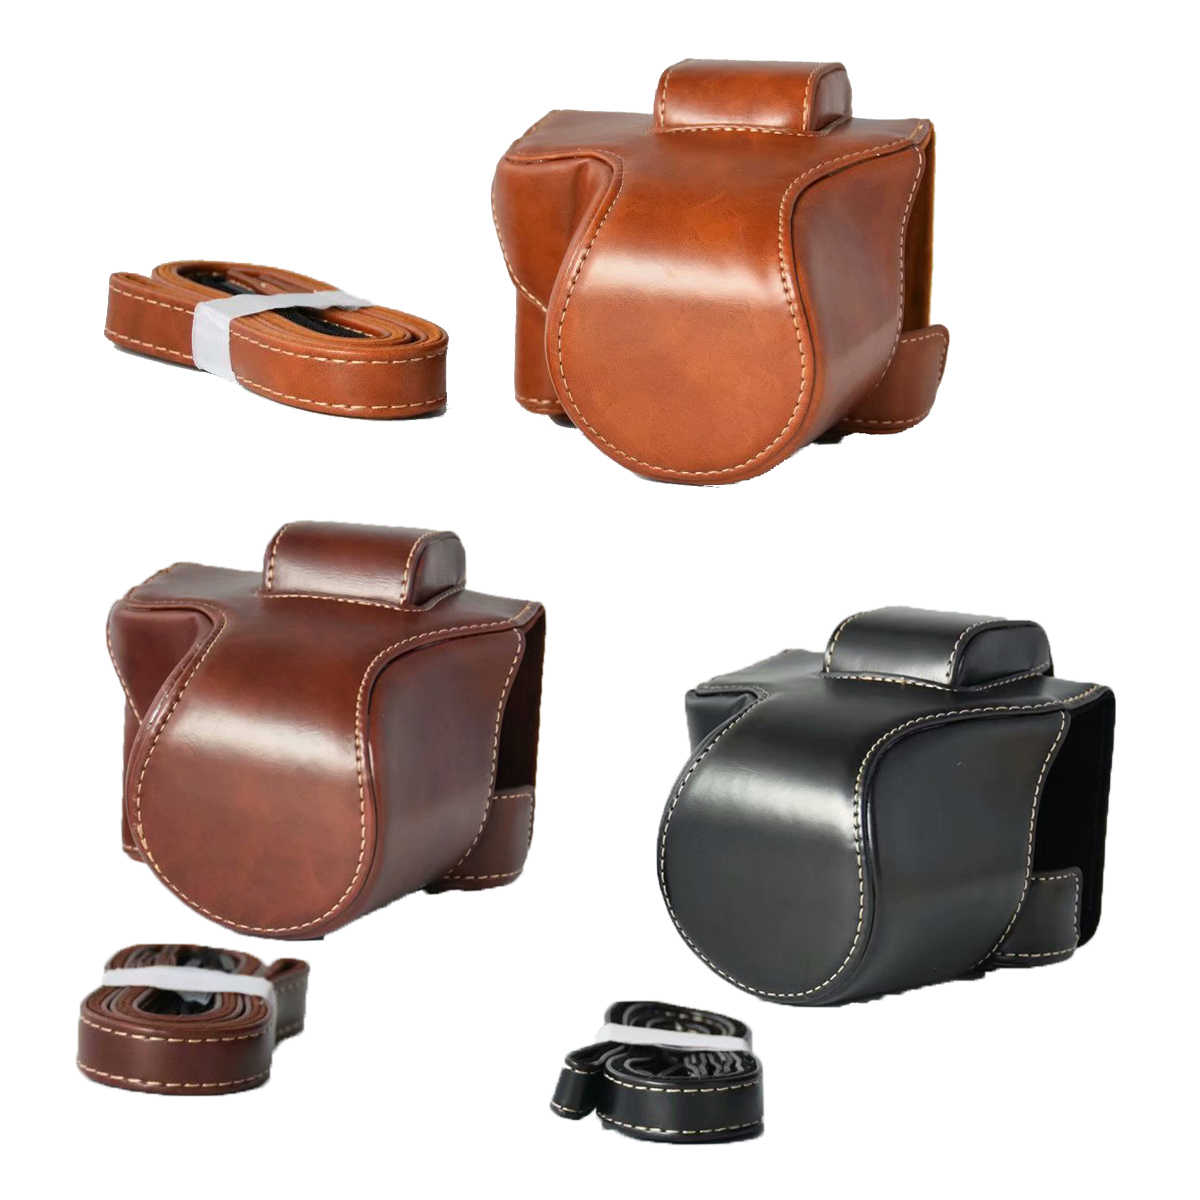 New PU Leather Camera Bag Bag For Canon EOS M5 M50  EOS M50 Case Camera Bag Cover With Strap